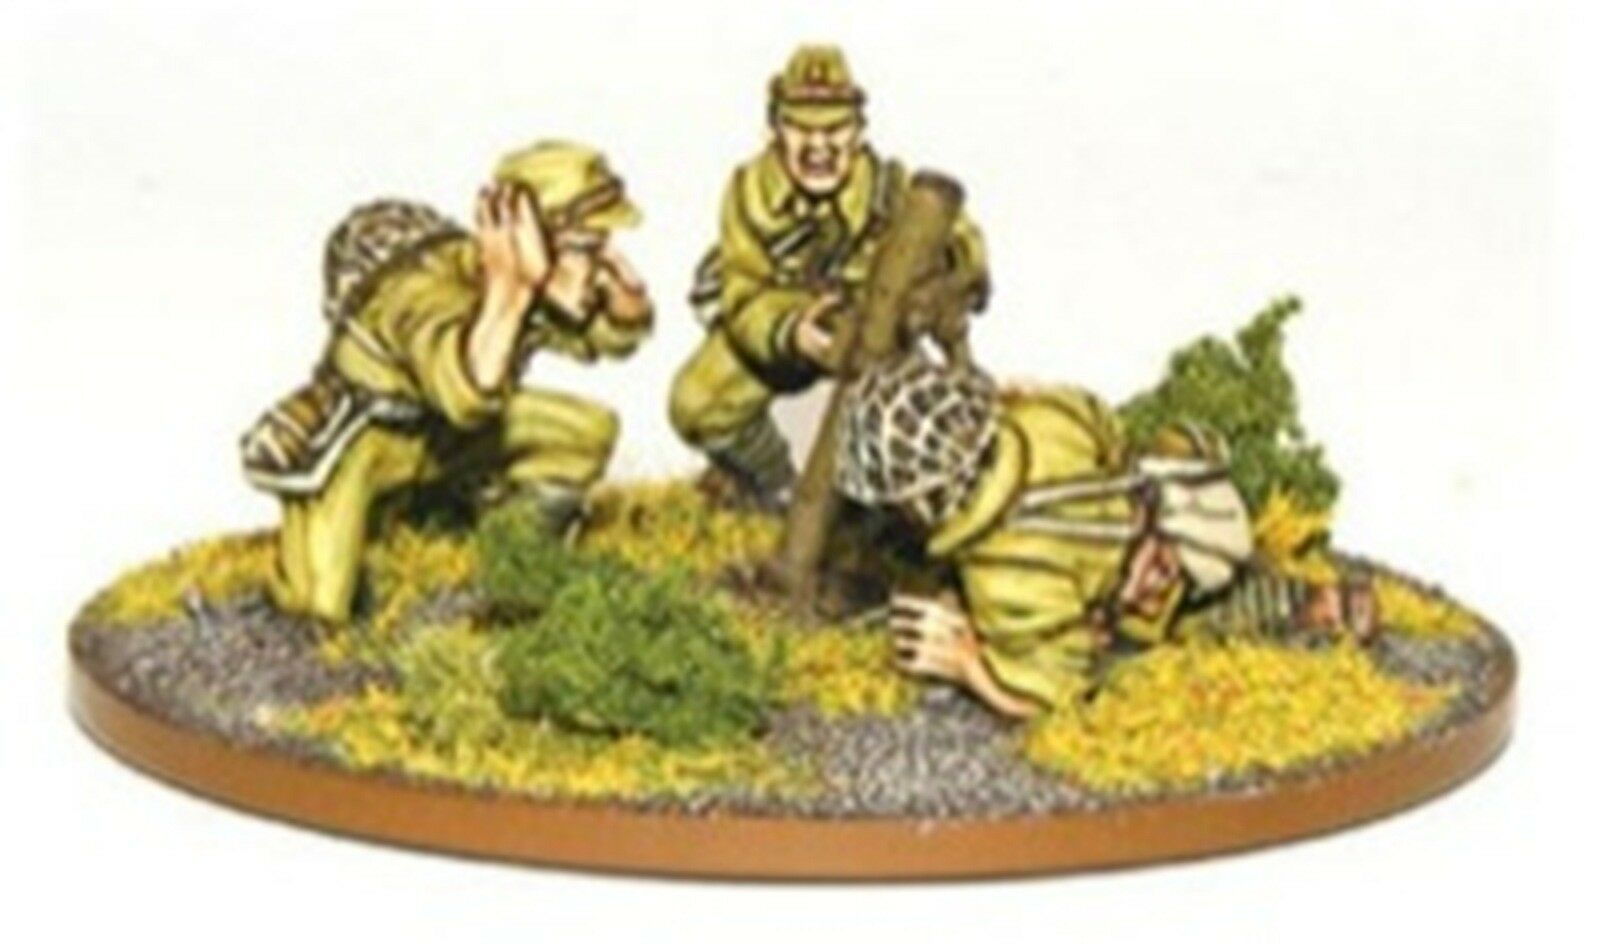 NEW BOLT ACTION MINIATURES IMPERIAL JAPANESE 81MM MORTAR COLLECTIBLES WGB-JI-25